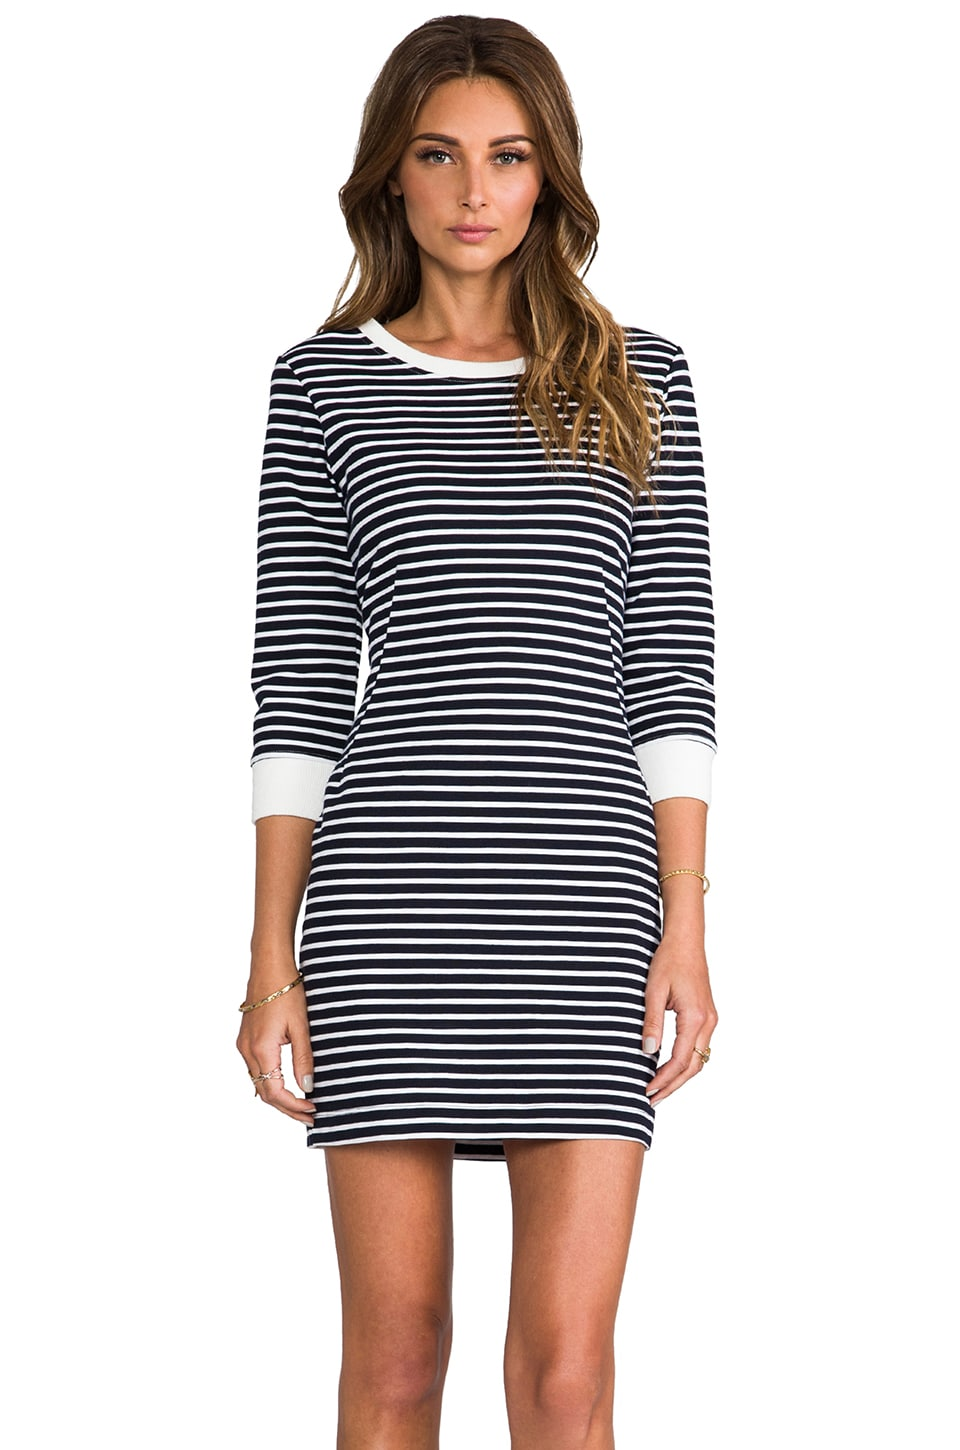 Theory Bimini Zamion Dress in Uniform & White